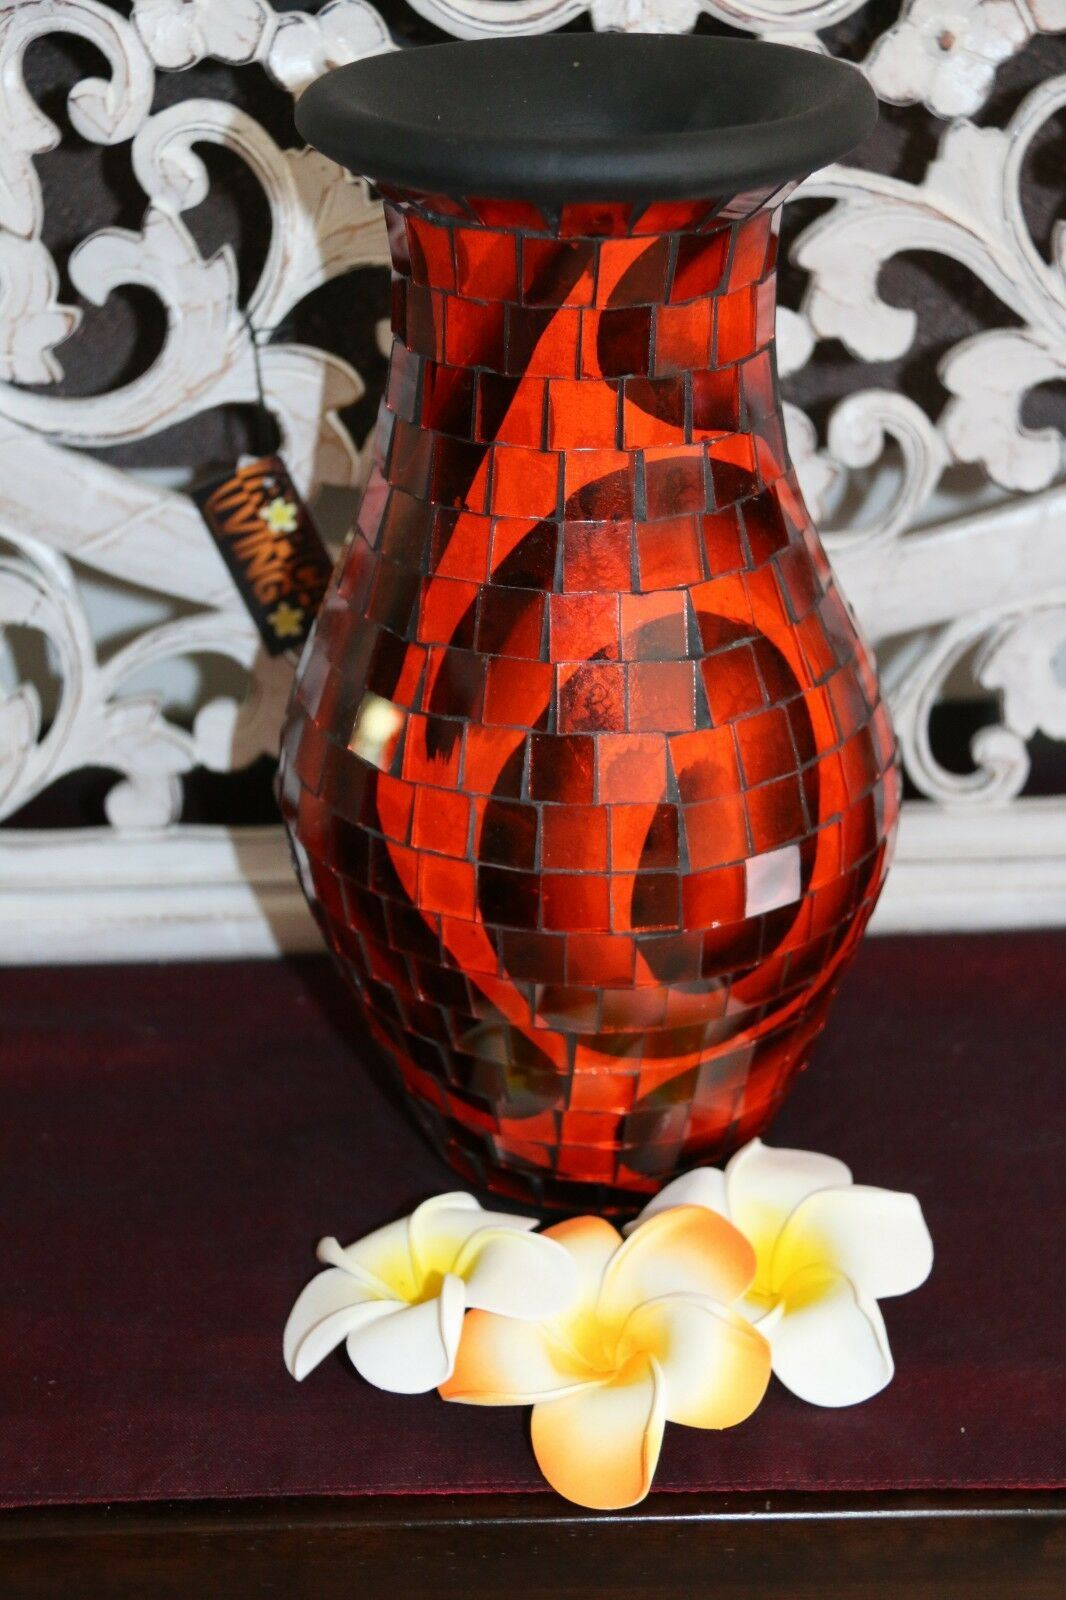 NEW Balinese Mosaic Decorative Vase - 2 Sizes!!  Bali Mosaic Vase Orange/Black